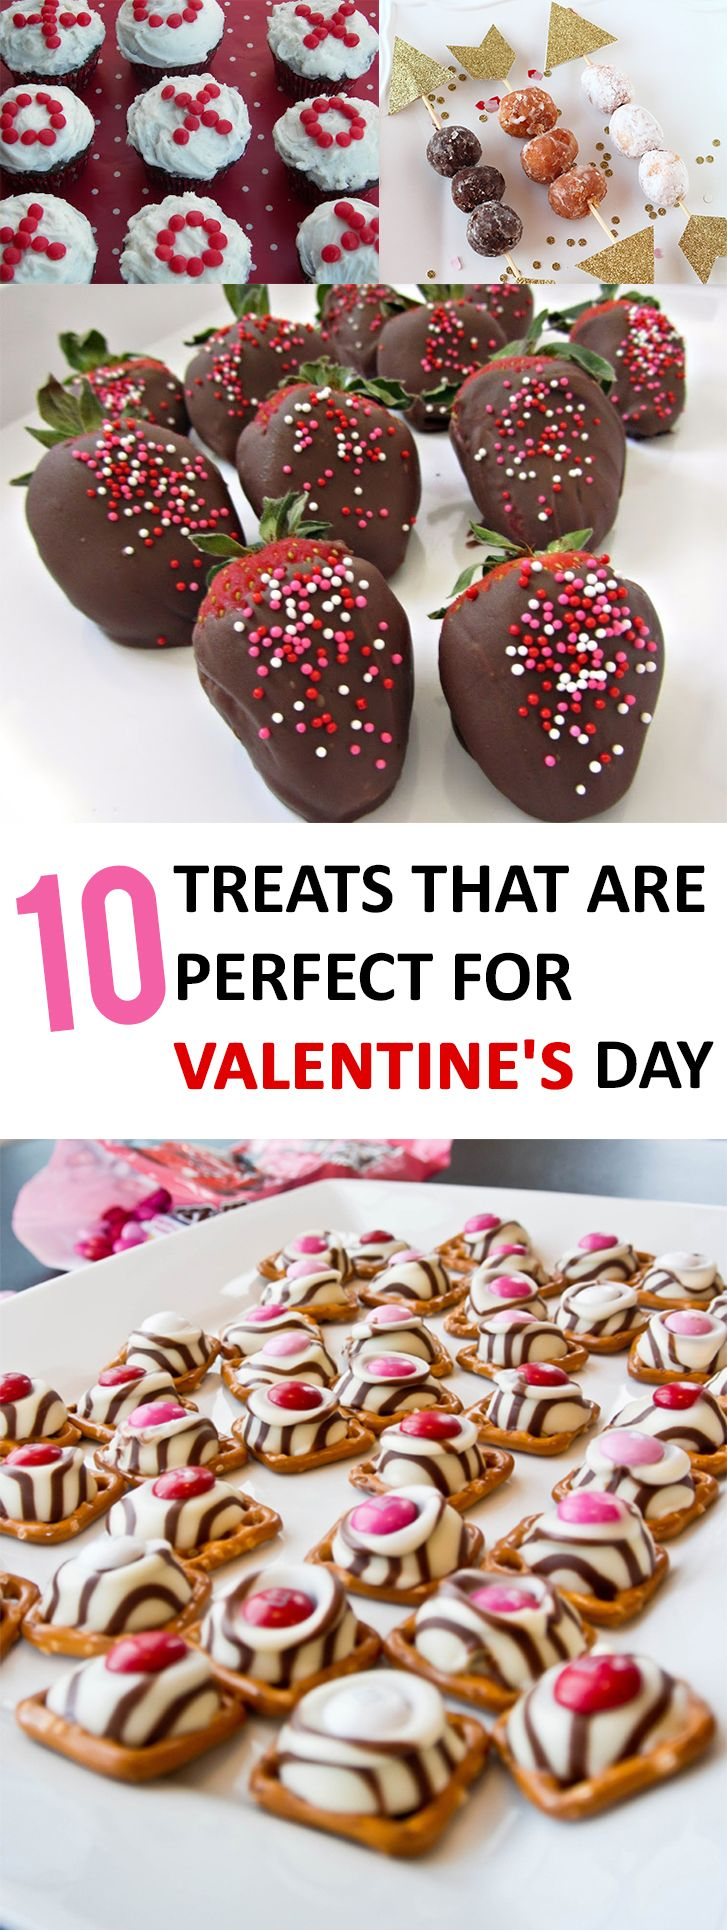 1013 best Valentine's Day Ideas images on Pinterest